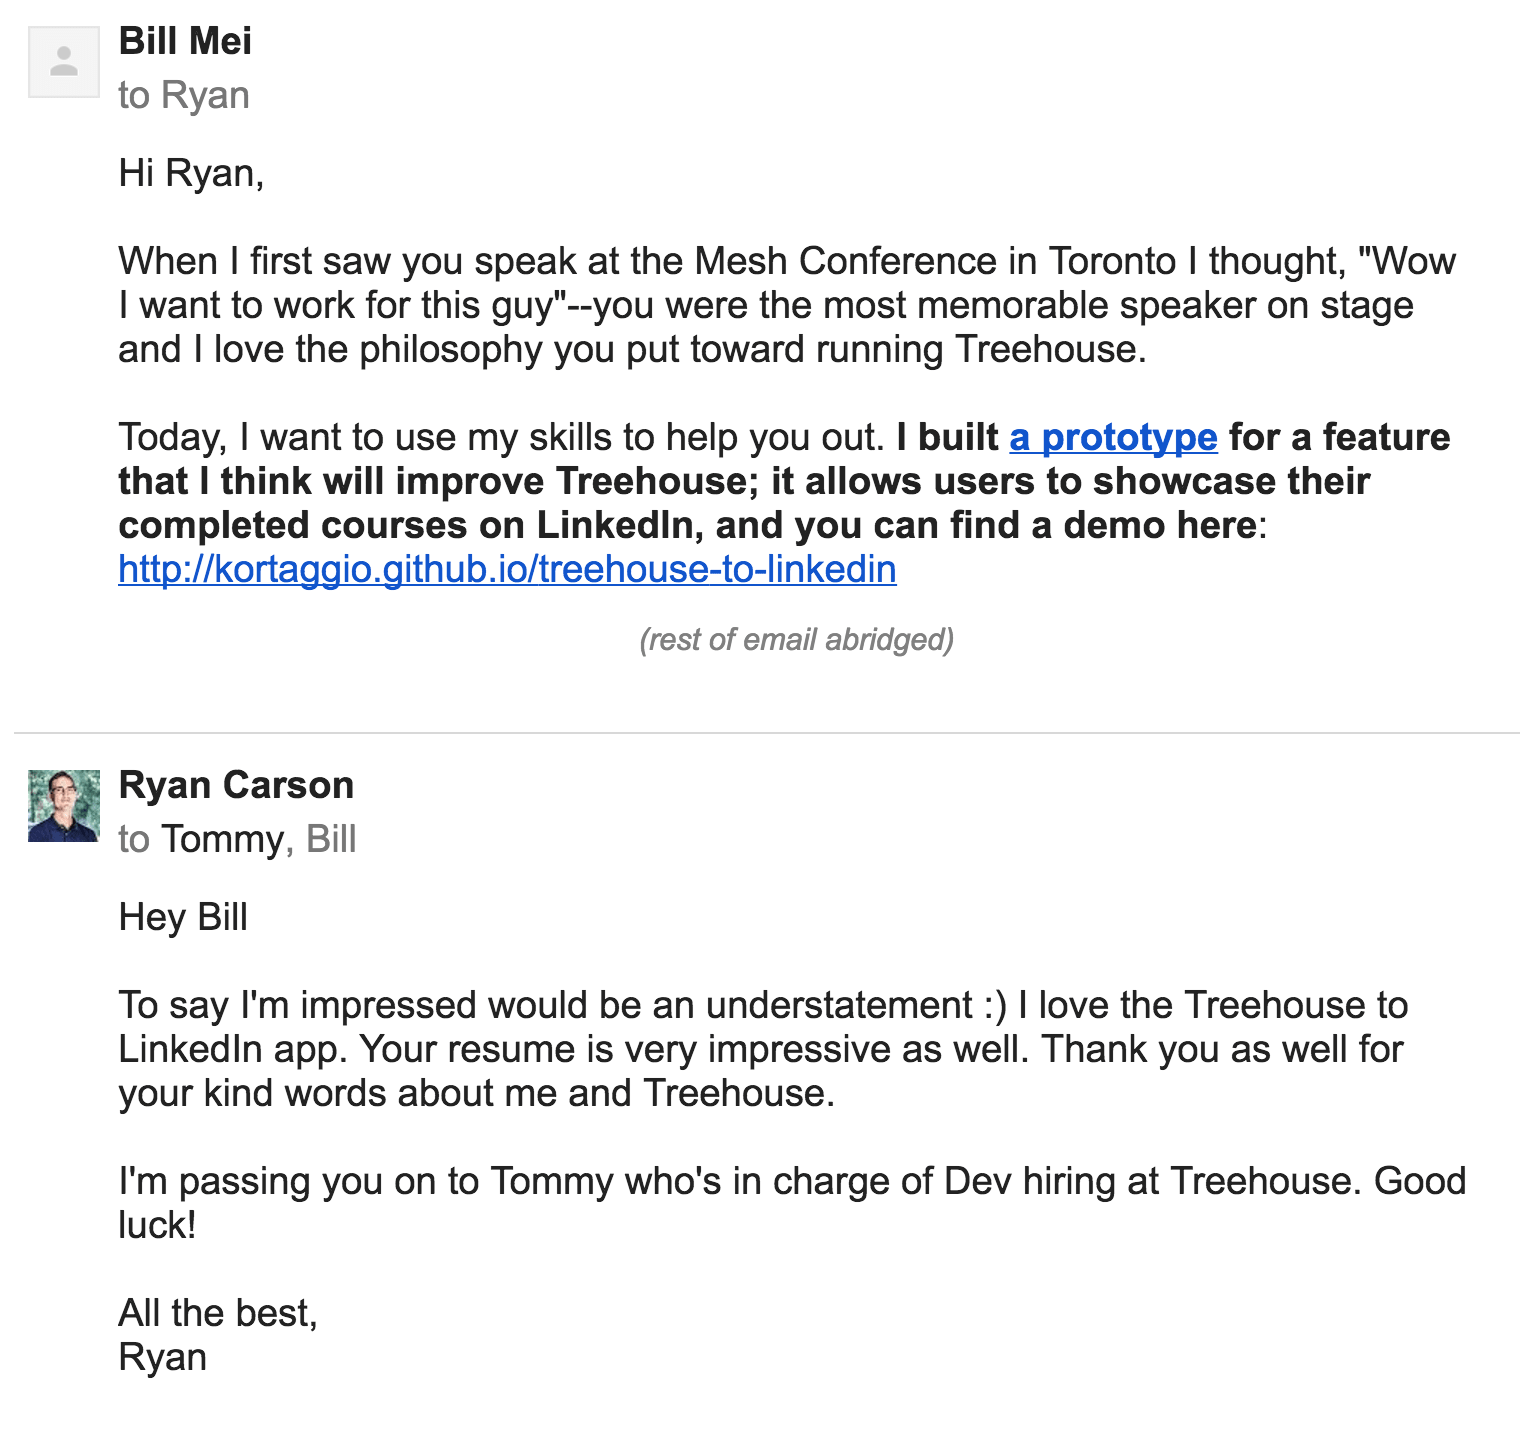 The email I sent to Treehouse to apply for a job